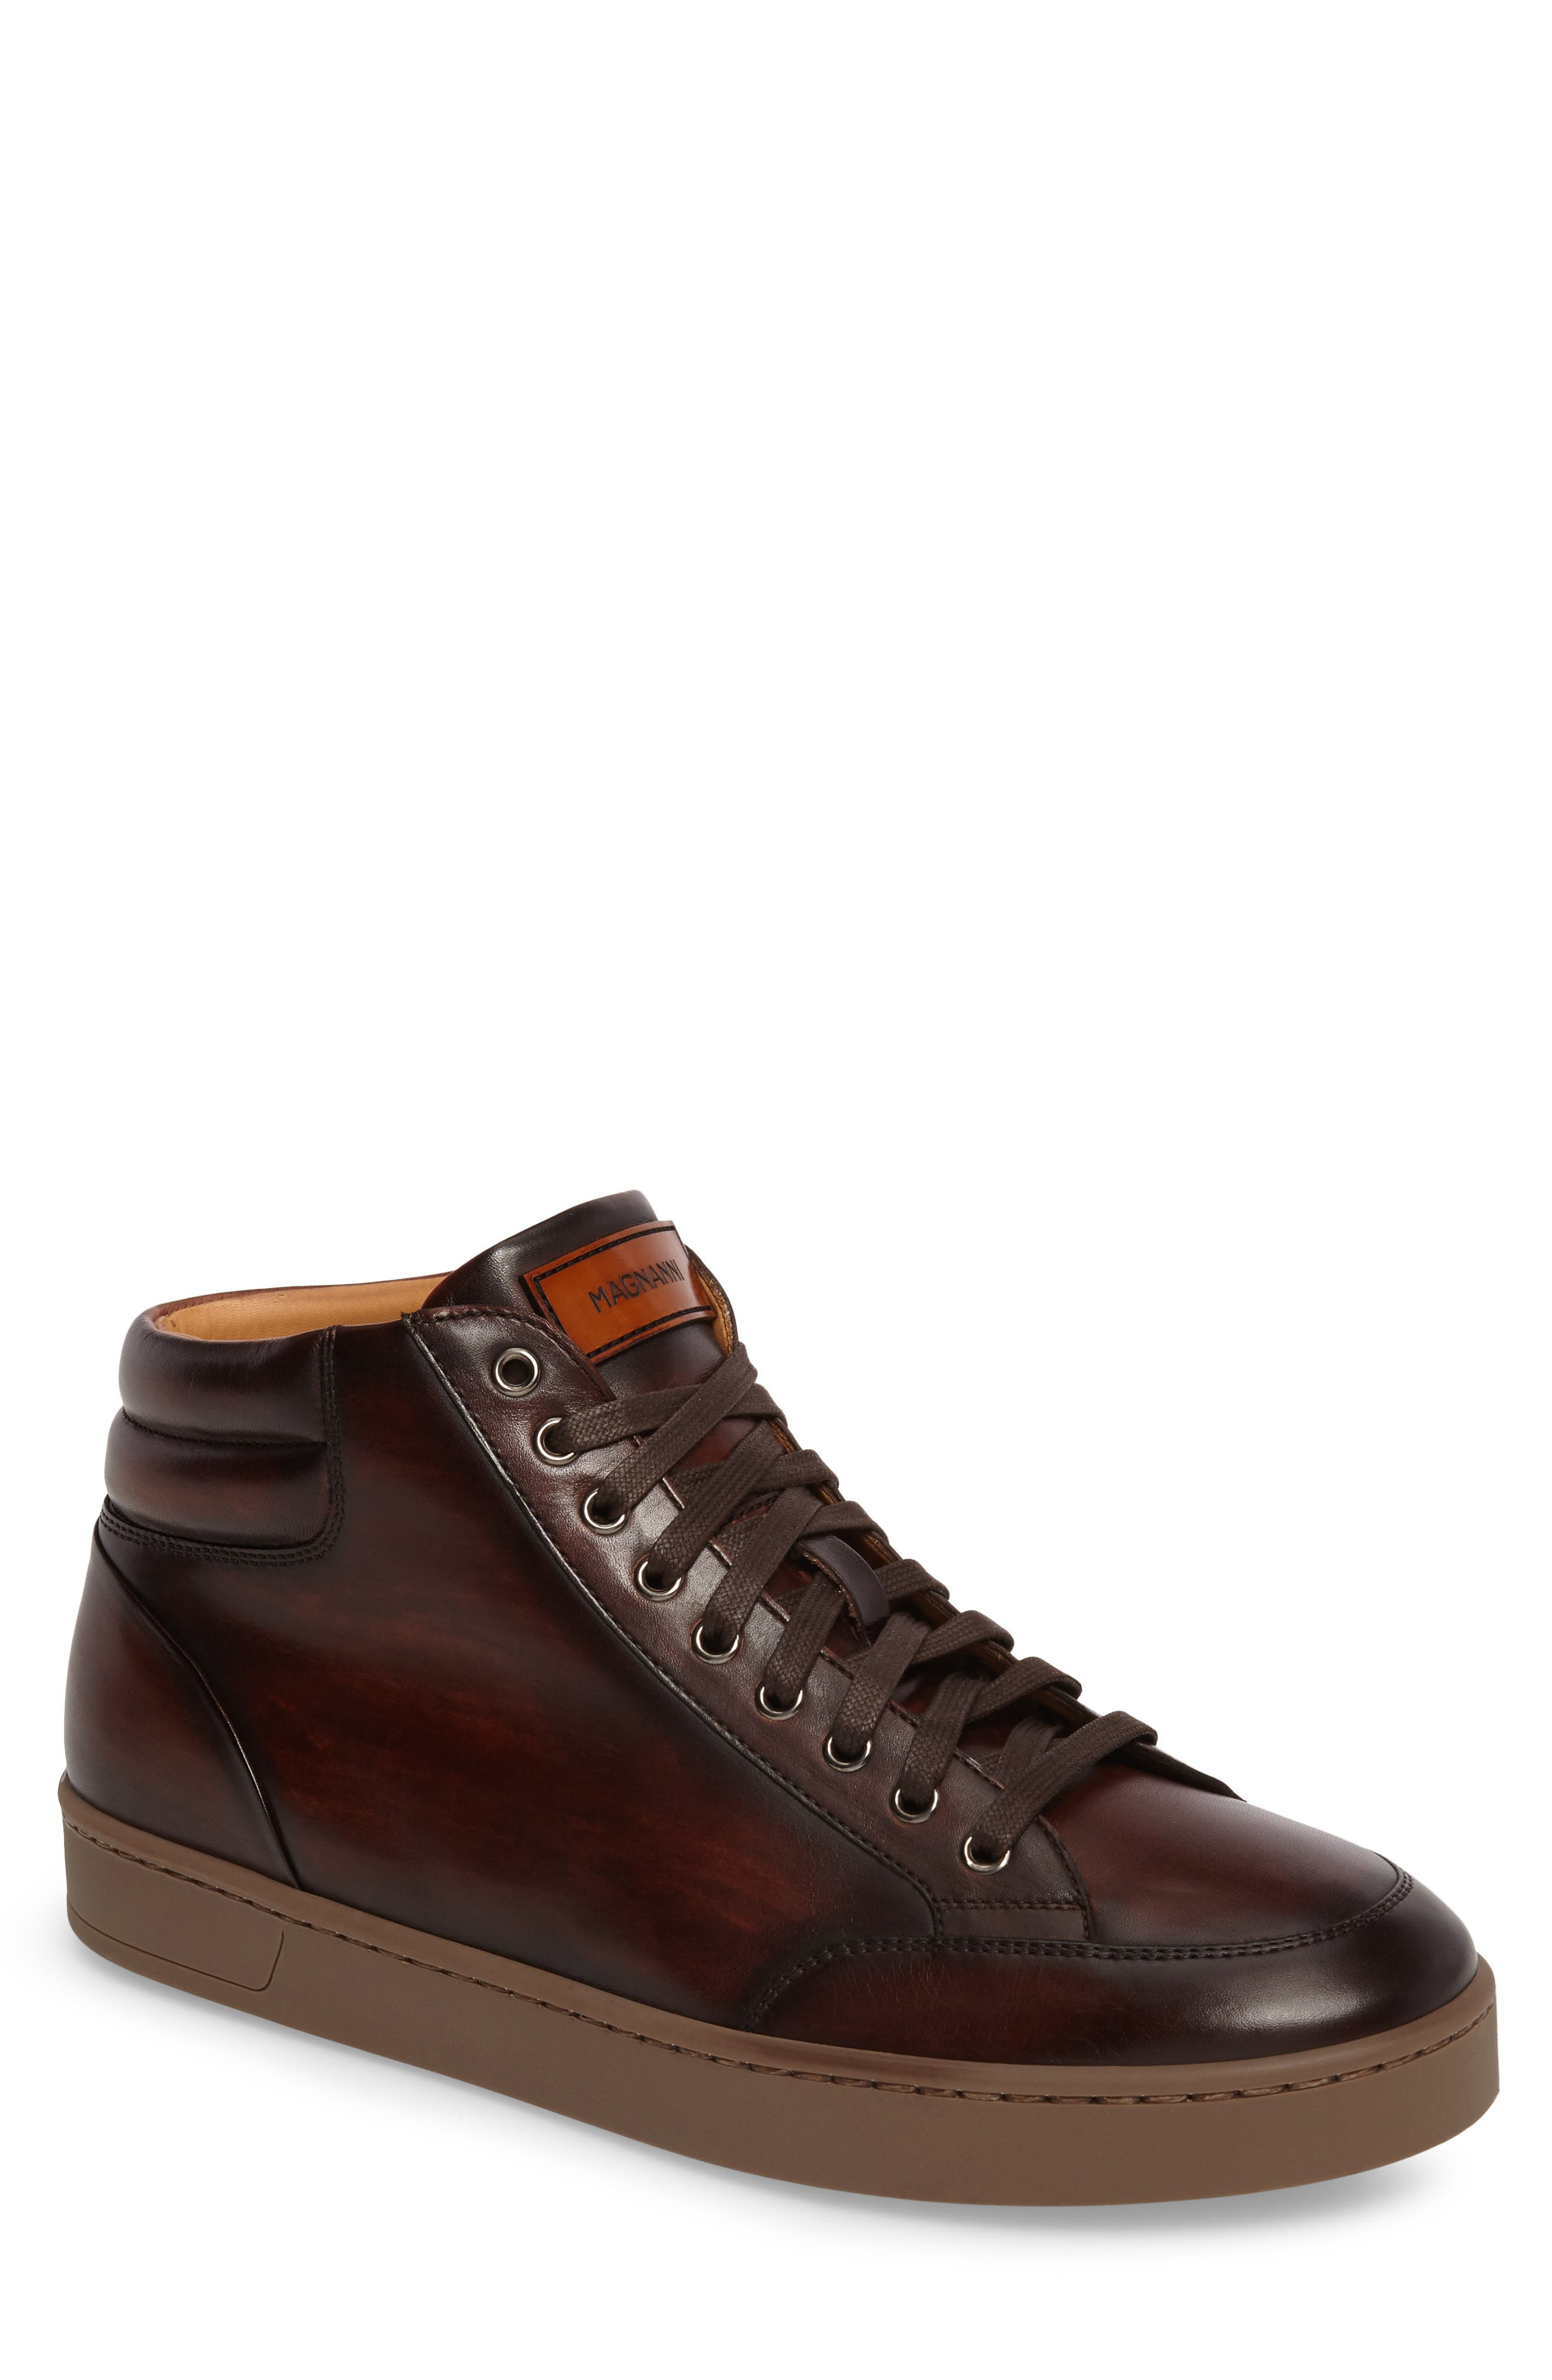 Carmel Sneaker,                             Main thumbnail 1, color,                             Mid Brown Leather